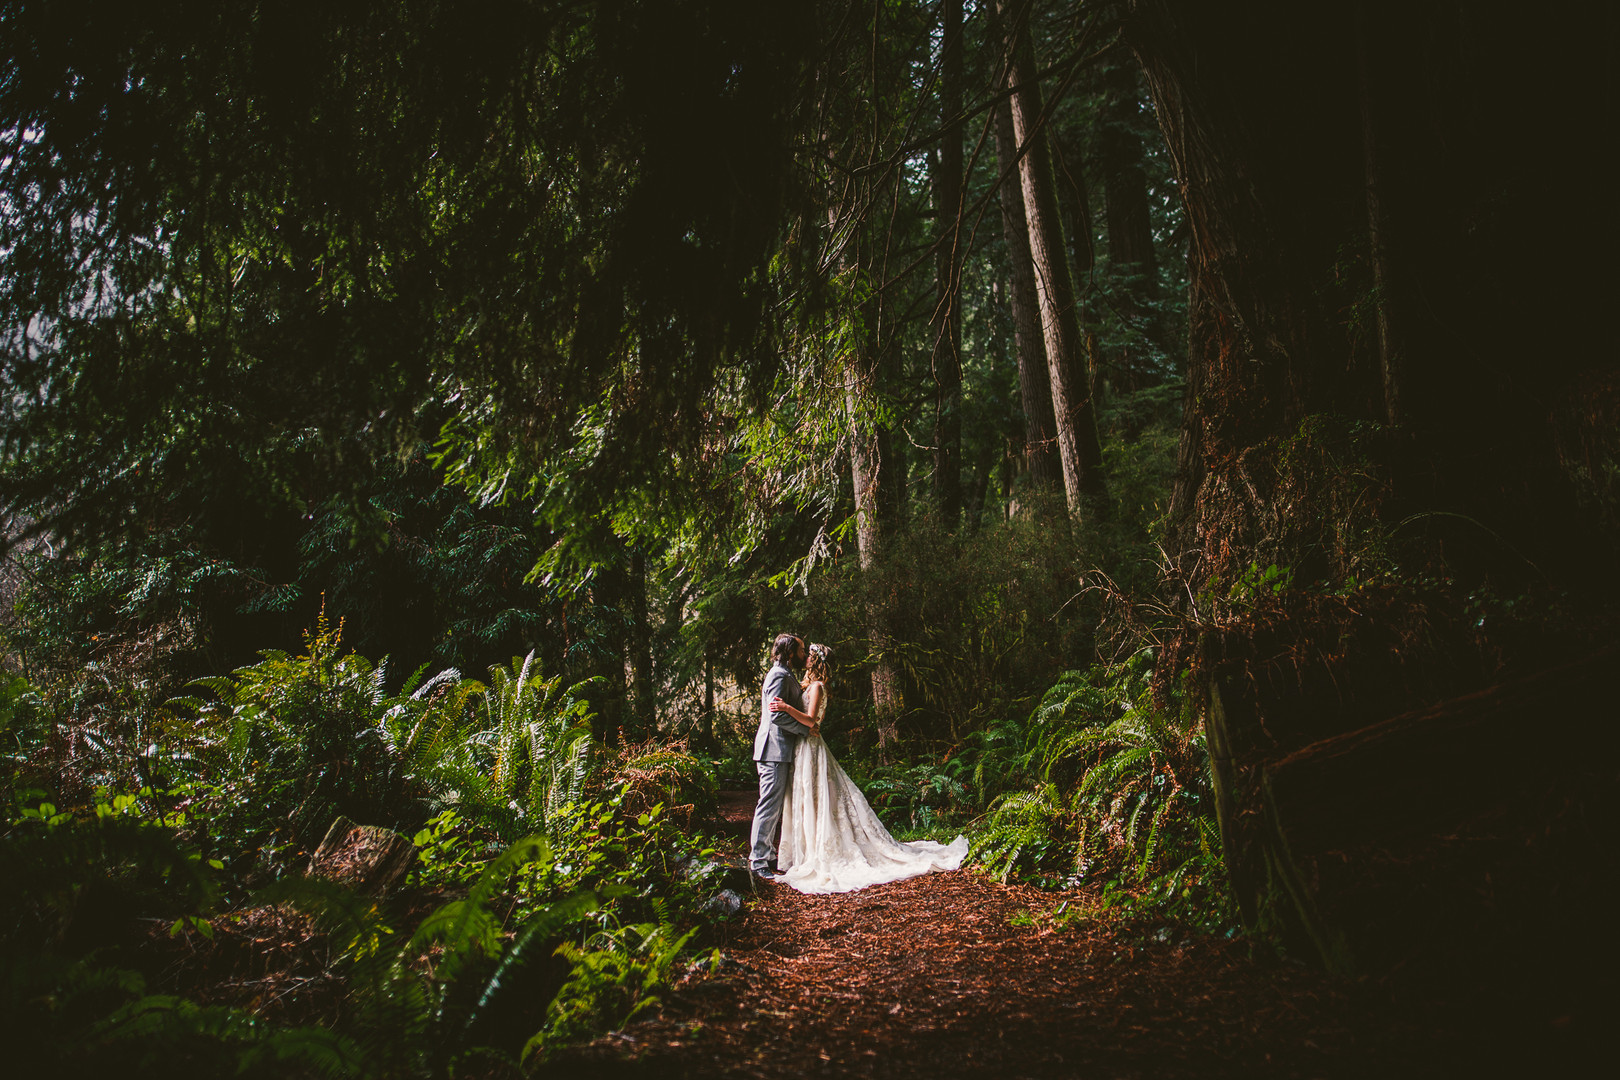 Jurassic Park vibes at Shaylee + Jake's Redwood elopement